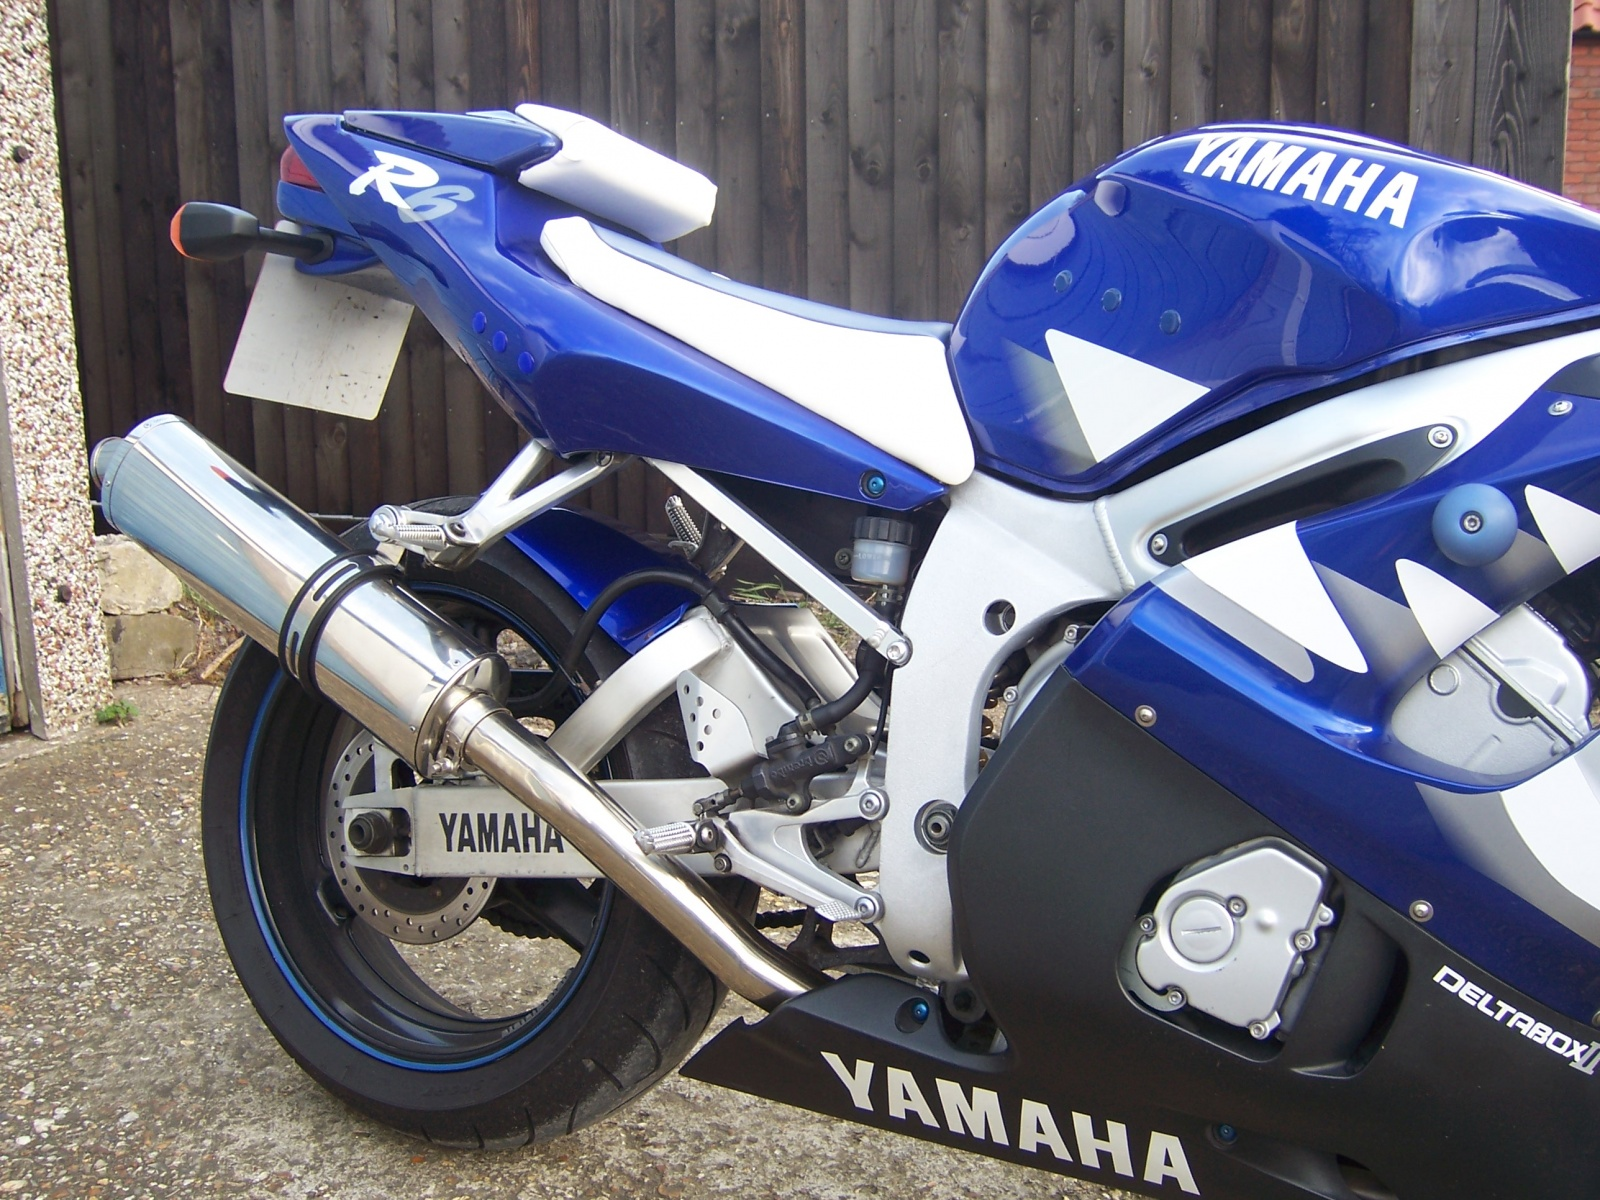 """Yamaha YZF R6 1998-2002<p>A16 Road Legal Stainless Exhaust with Polished Traditional Spout</p><p/><br/><a href=""""https://a16roadnracesupplies.co.uk/product/a16-yamaha-exhausts/"""">Buy now!</a>"""